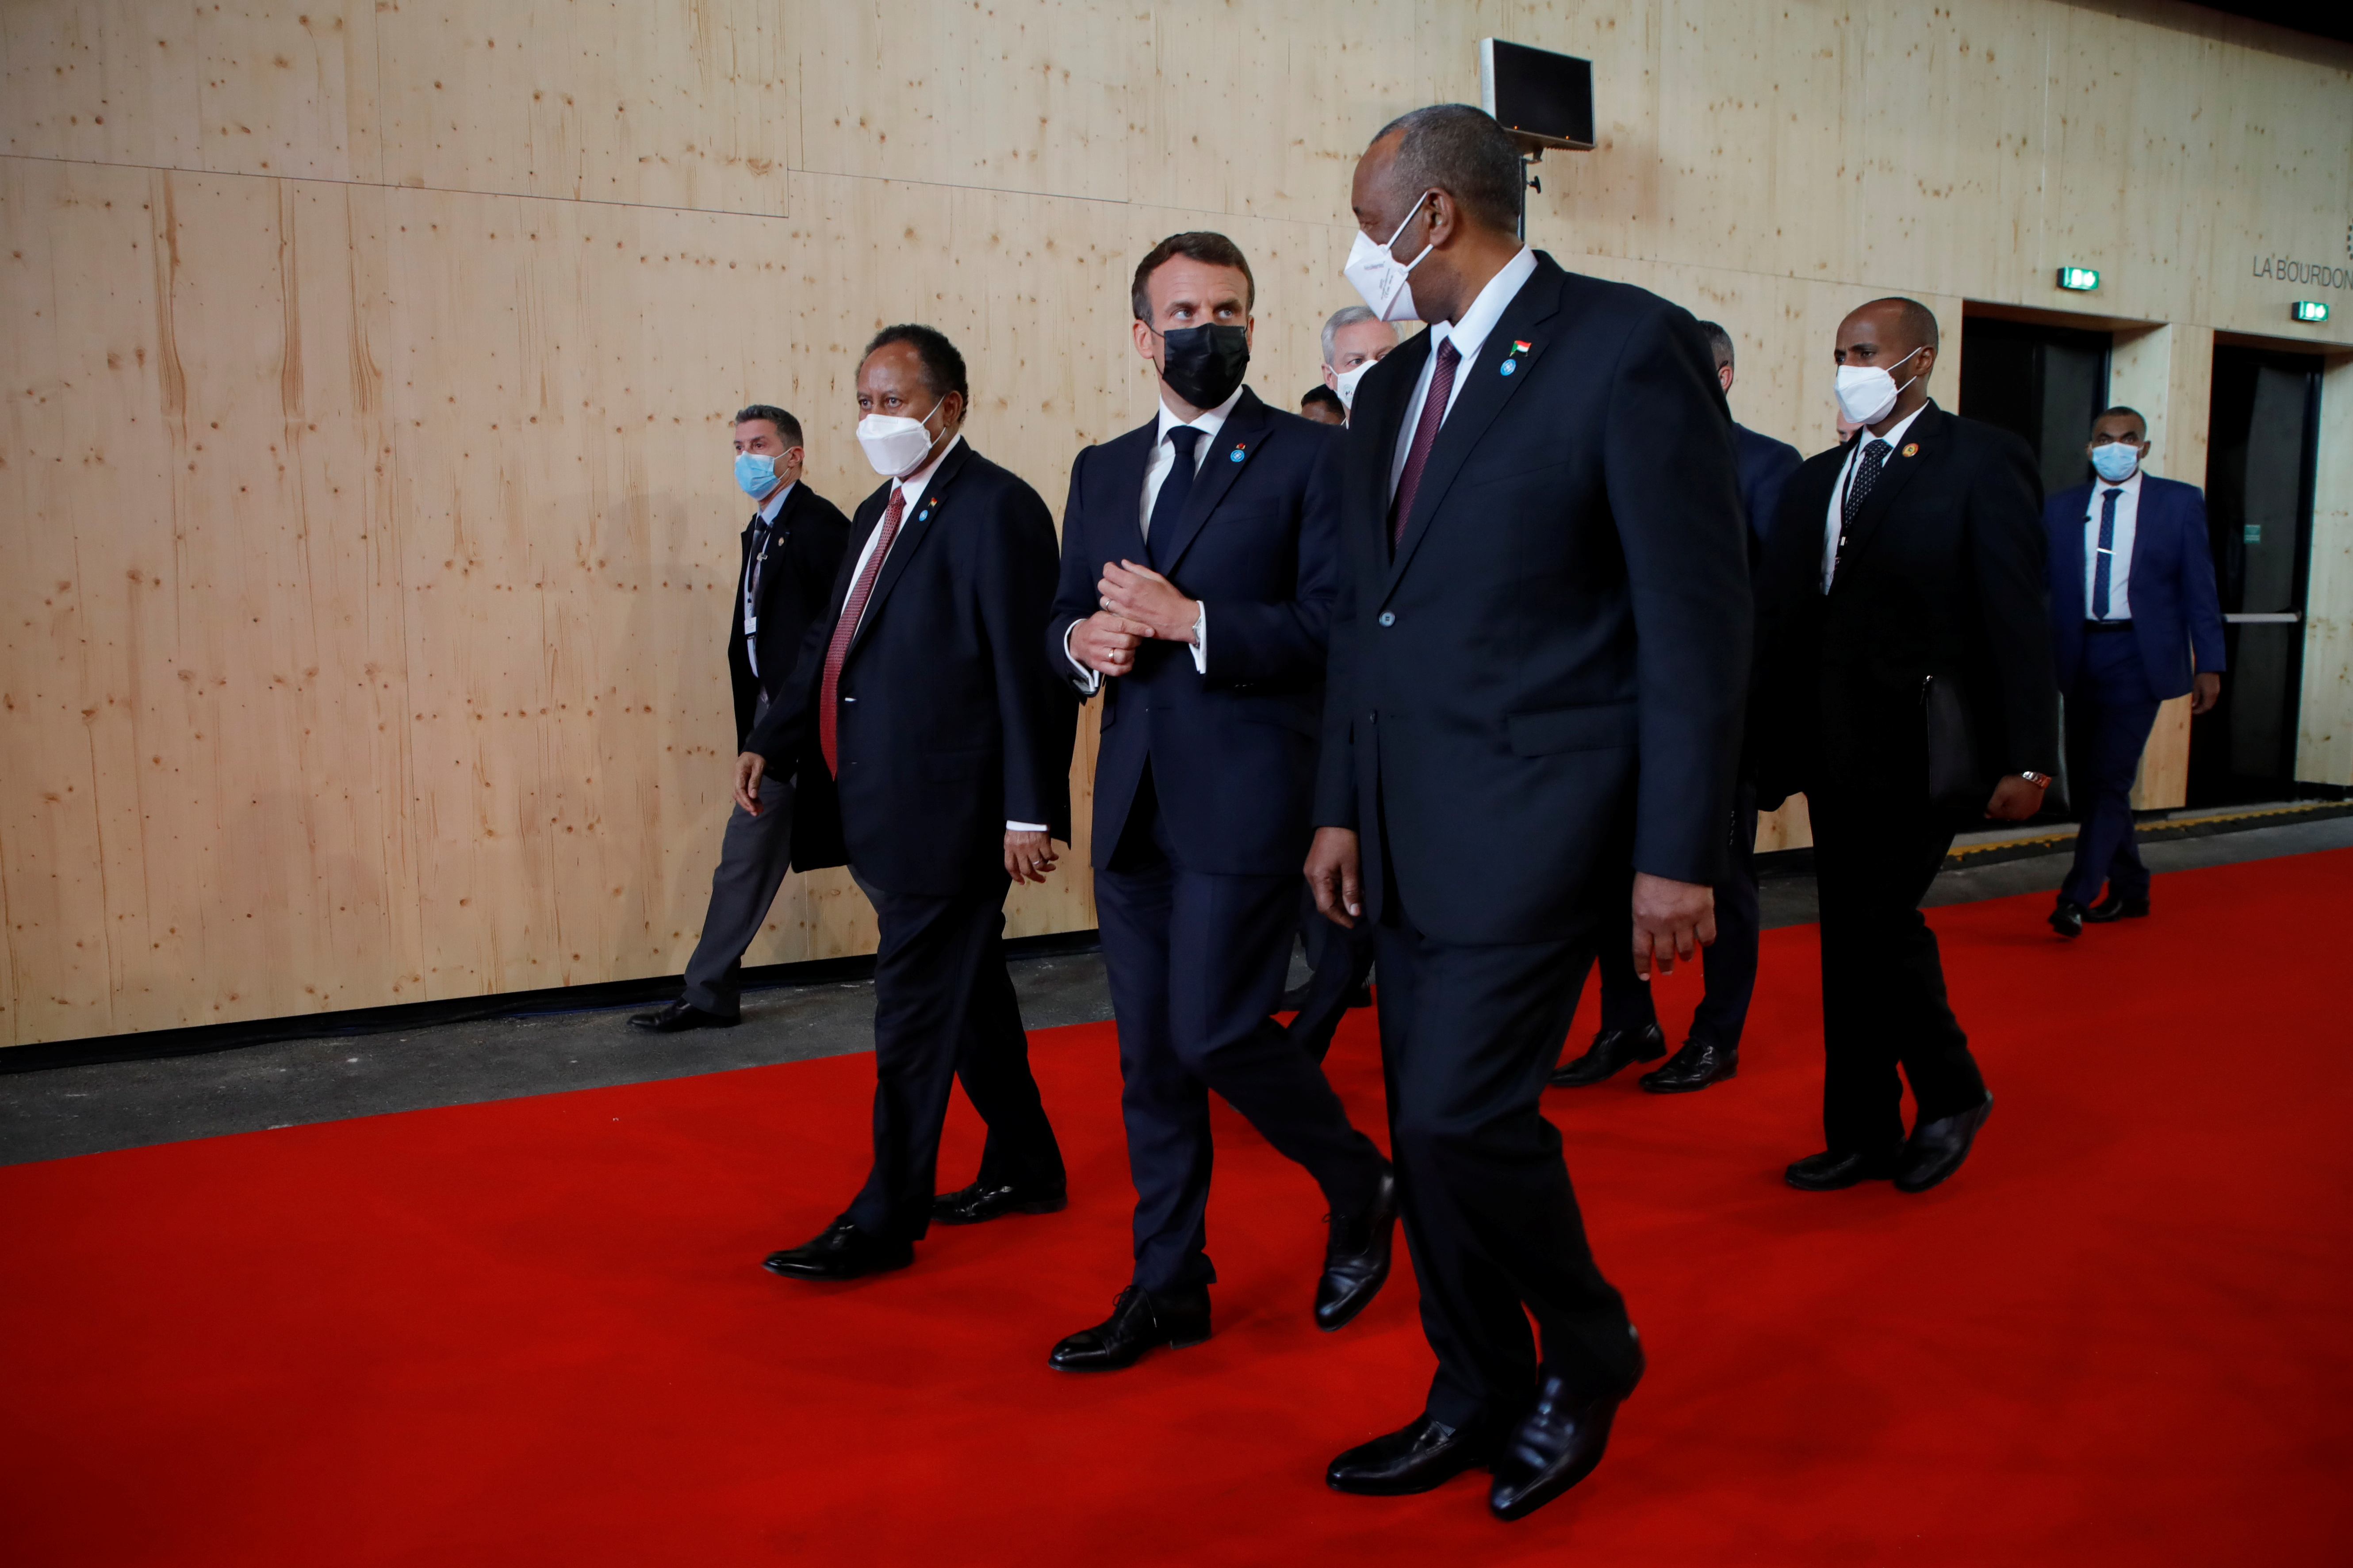 French President Emmanuel Macron walks with Sudan's Sovereign Council Chief General Abdel Fattah al-Burhan and Sudan's Prime Minister Abdalla Hamdok before a joint news conference during the International Conference in support of Sudan at the Temporary Grand Palais in Paris, France, May 17, 2021. REUTERS/Sarah Meyssonnier/Pool